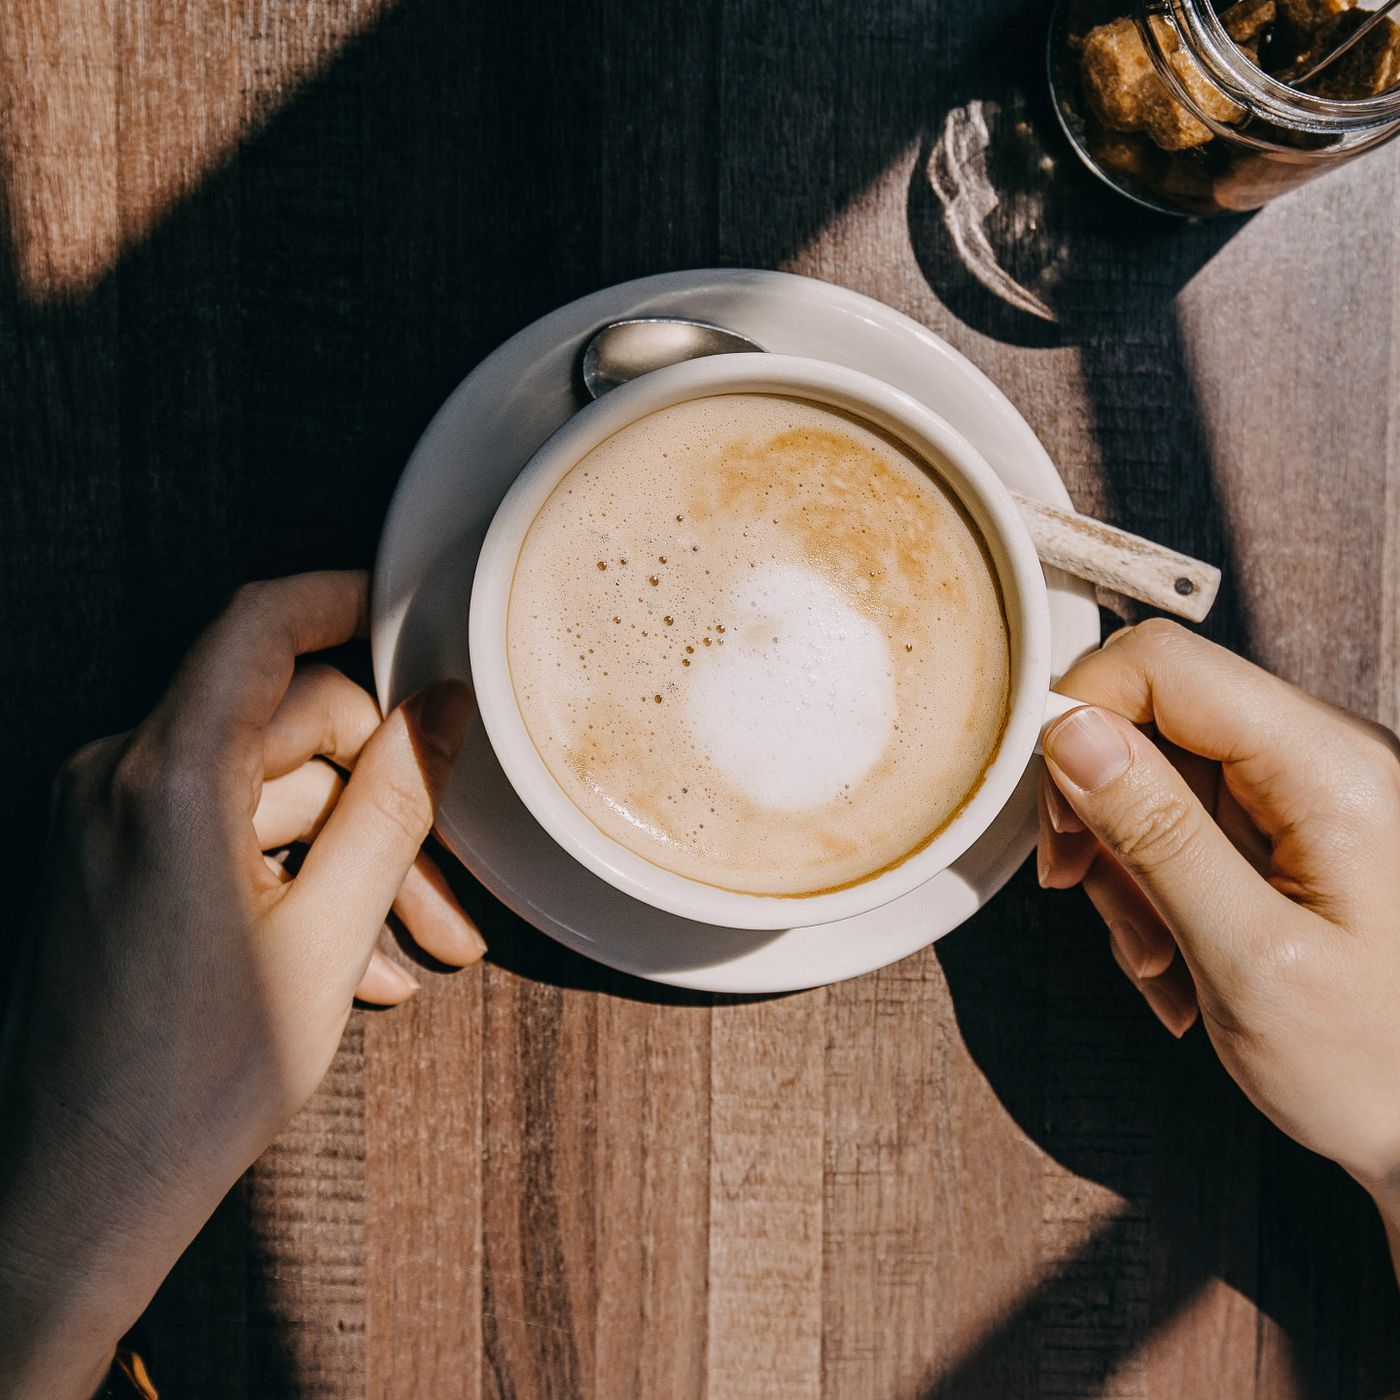 Person touching a white coffee cup and saucer filled with a cappuccino